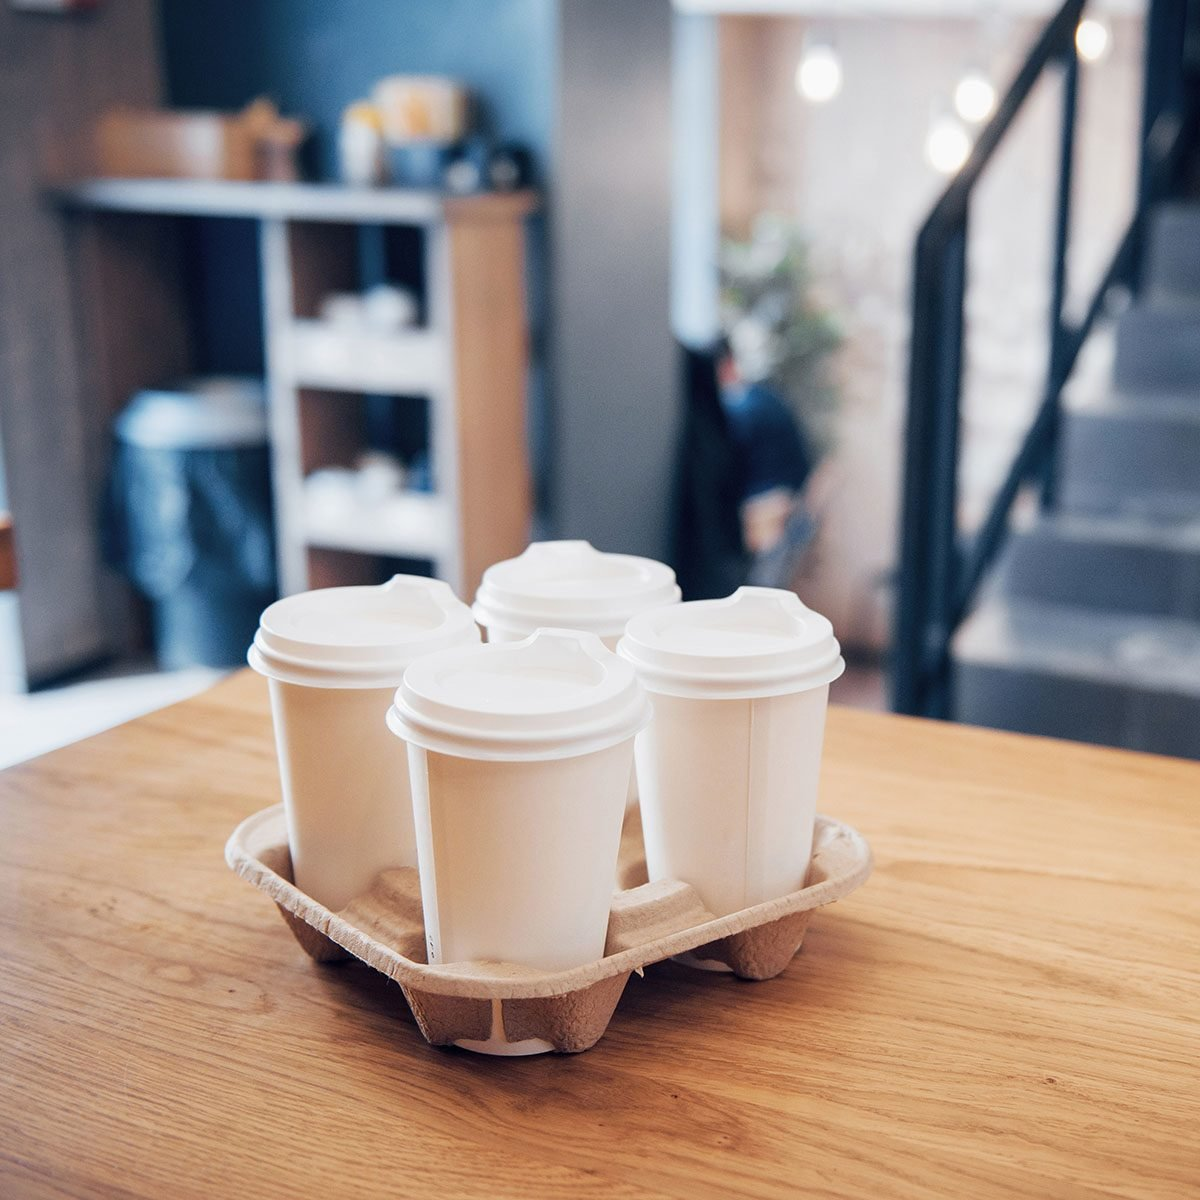 Take coffee to work for the entire office. High angle shot of a cardboard take out tray with four coffee cups with lids.